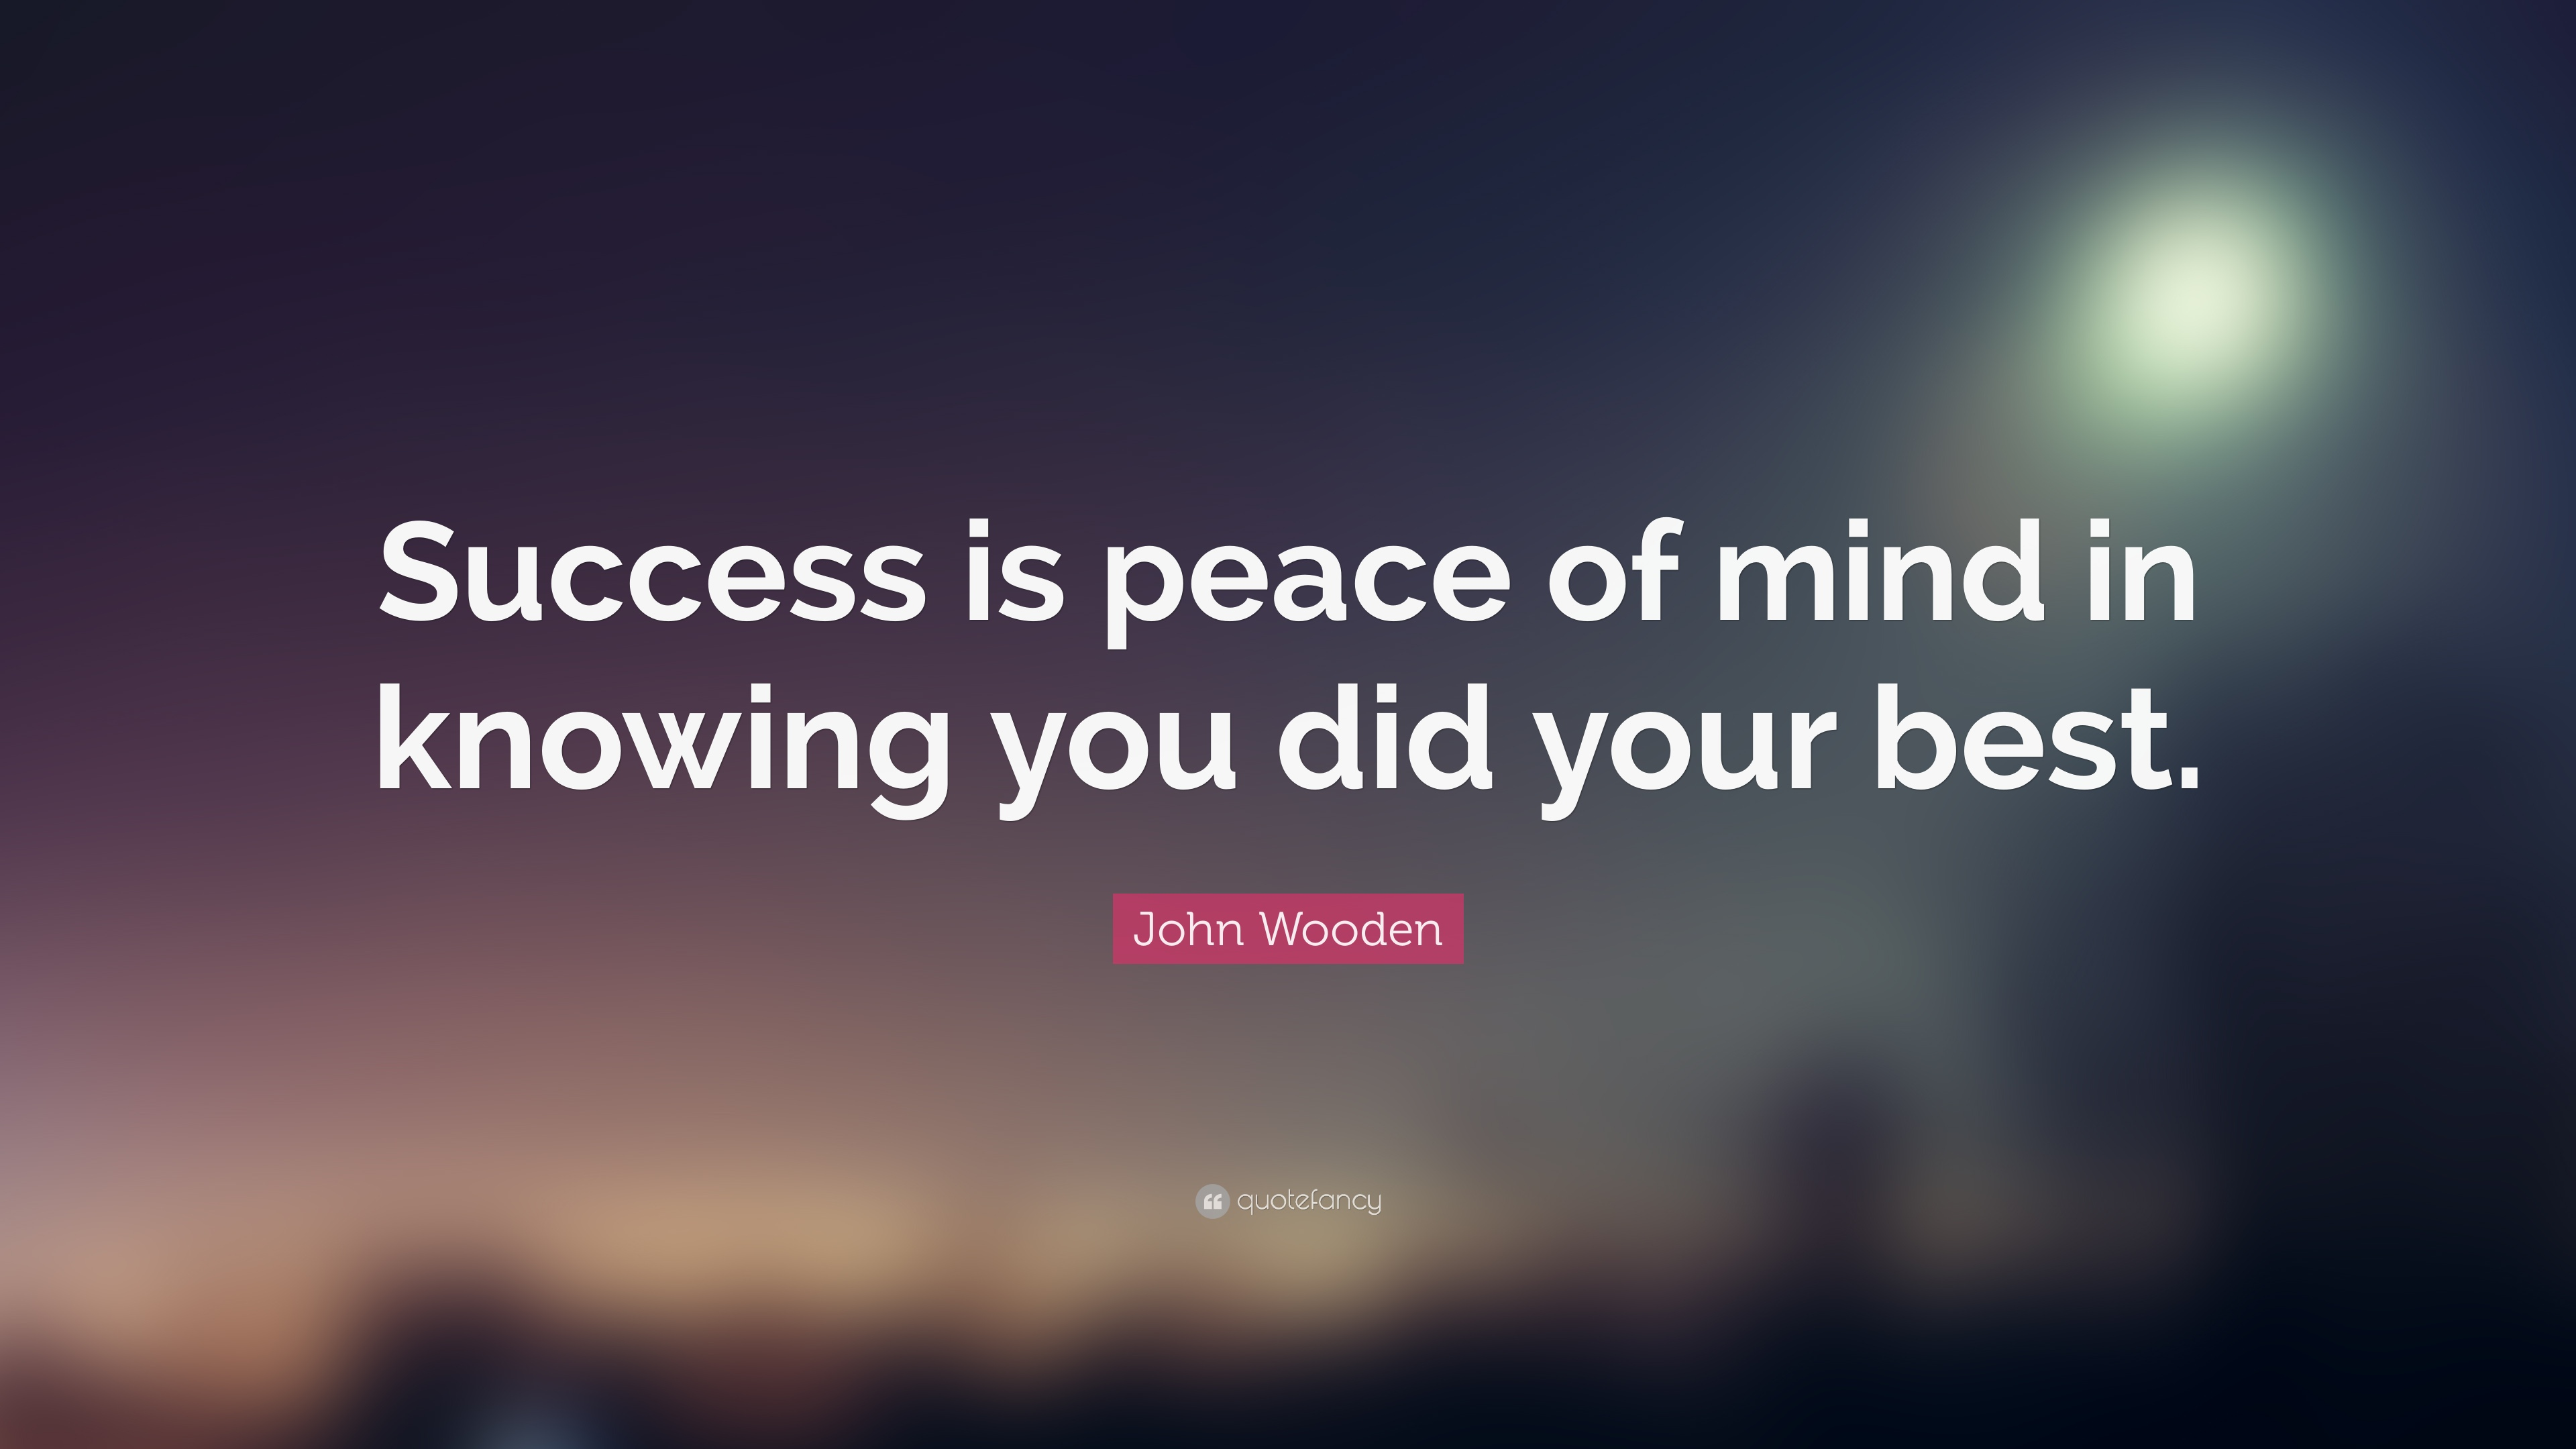 John Wooden Quote Success Is Peace Of Mind In Knowing You Did Your